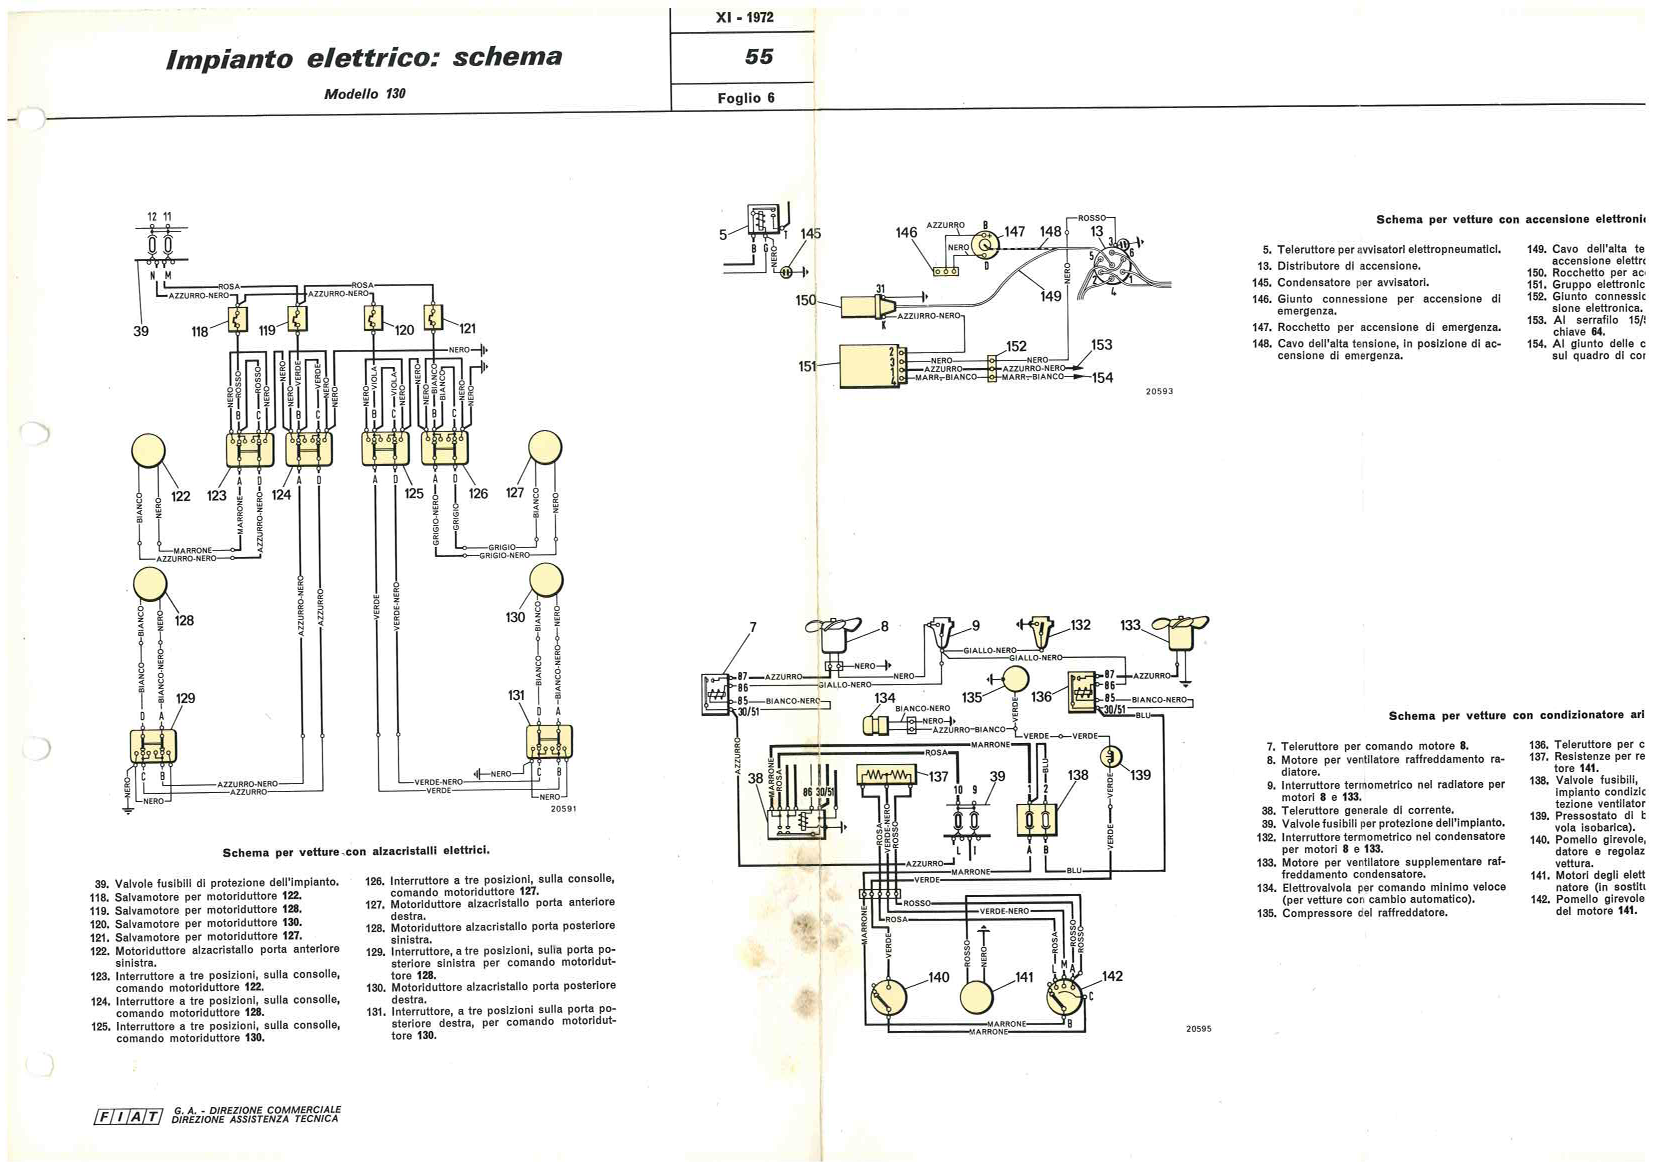 Fiat 130 Wiring Diagram Reinvent Your Electrical System De Nederlandse Website Rh Fiat130 Nl 1979 Spider Ignition 124 Body